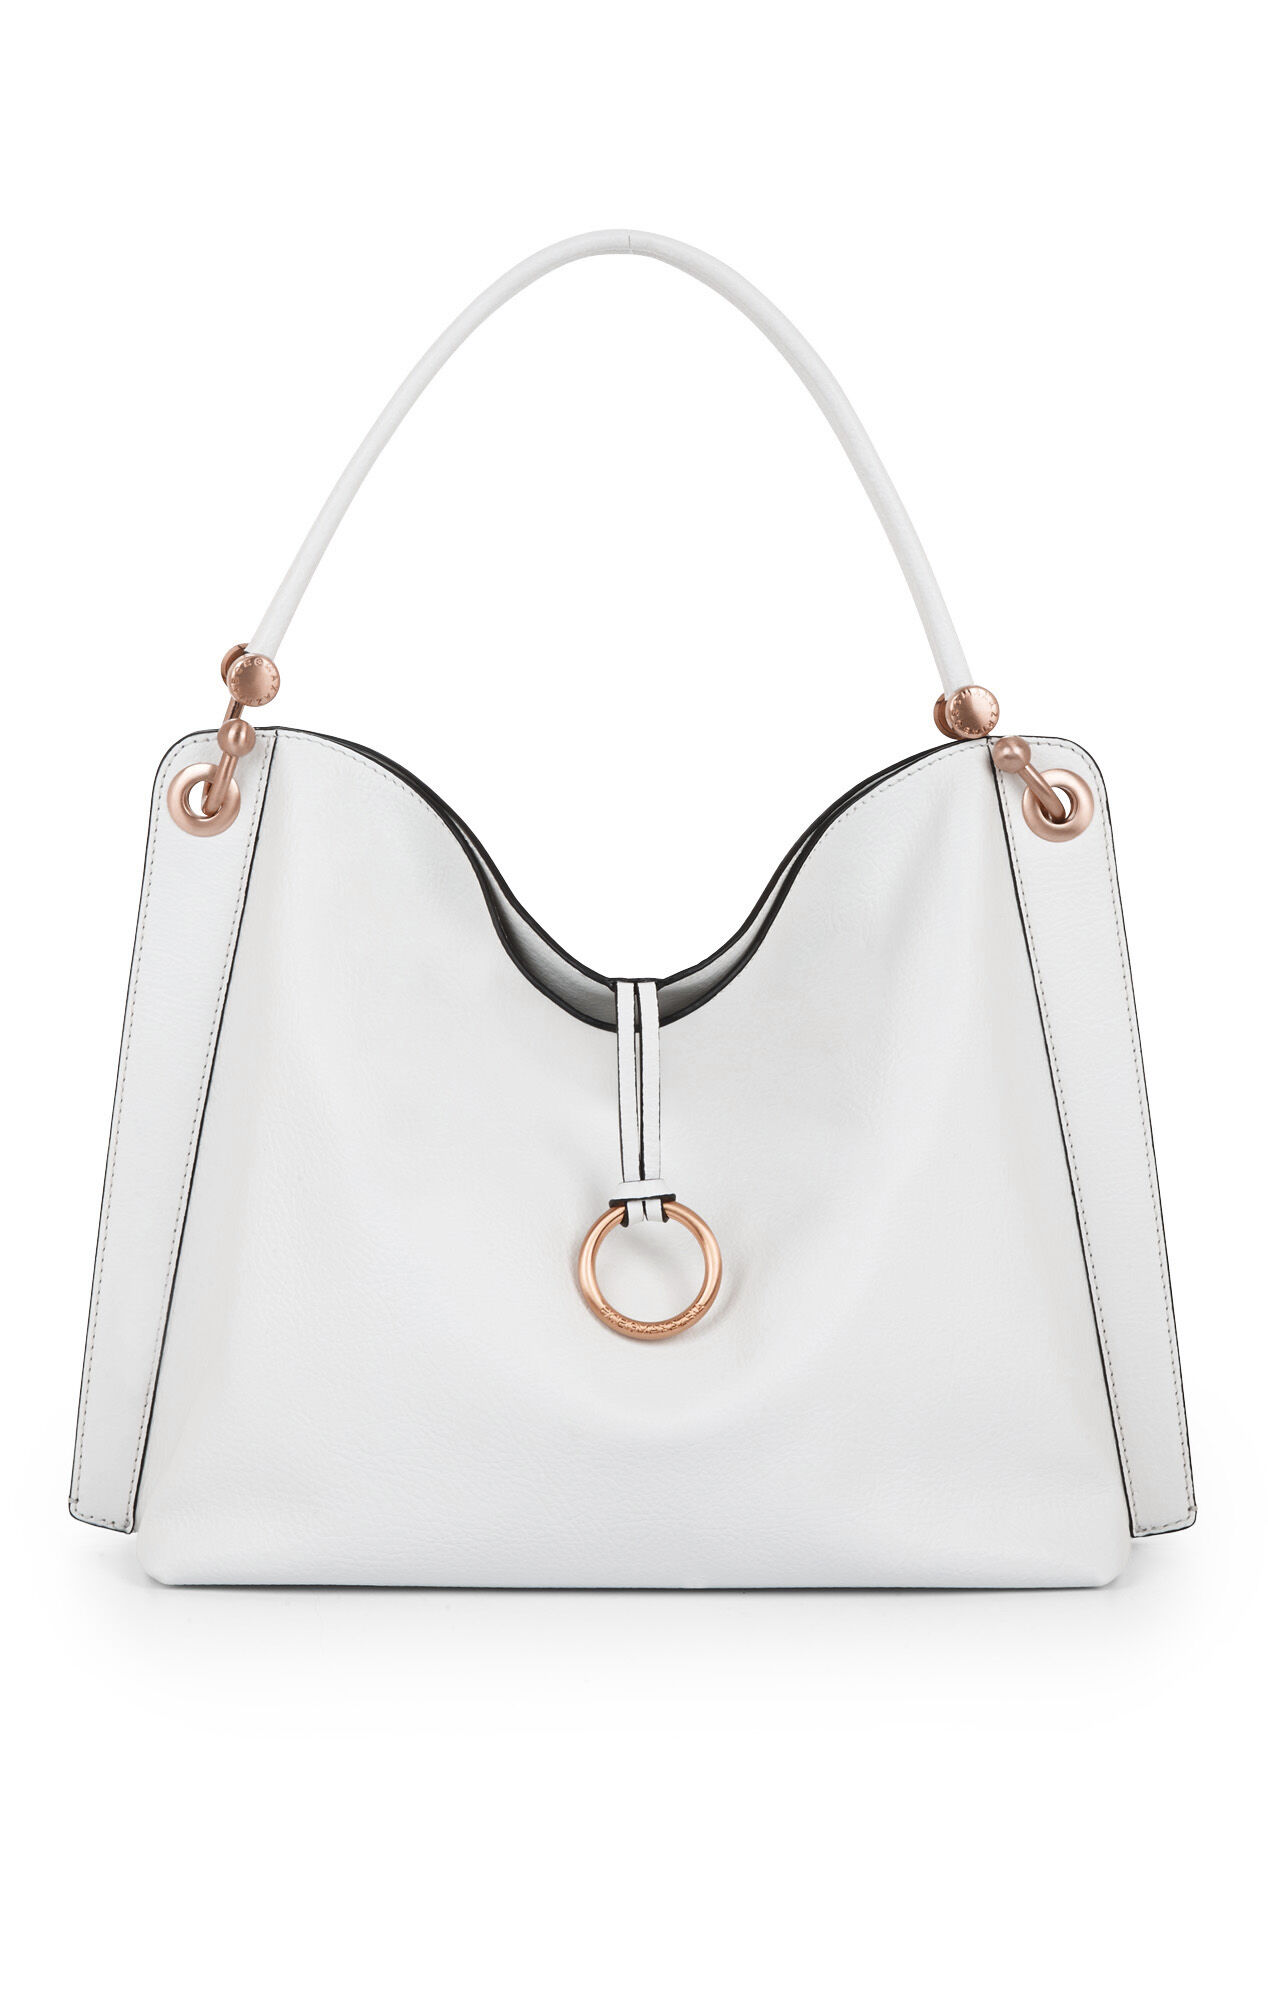 Amelie Beachwood Leather Satchel